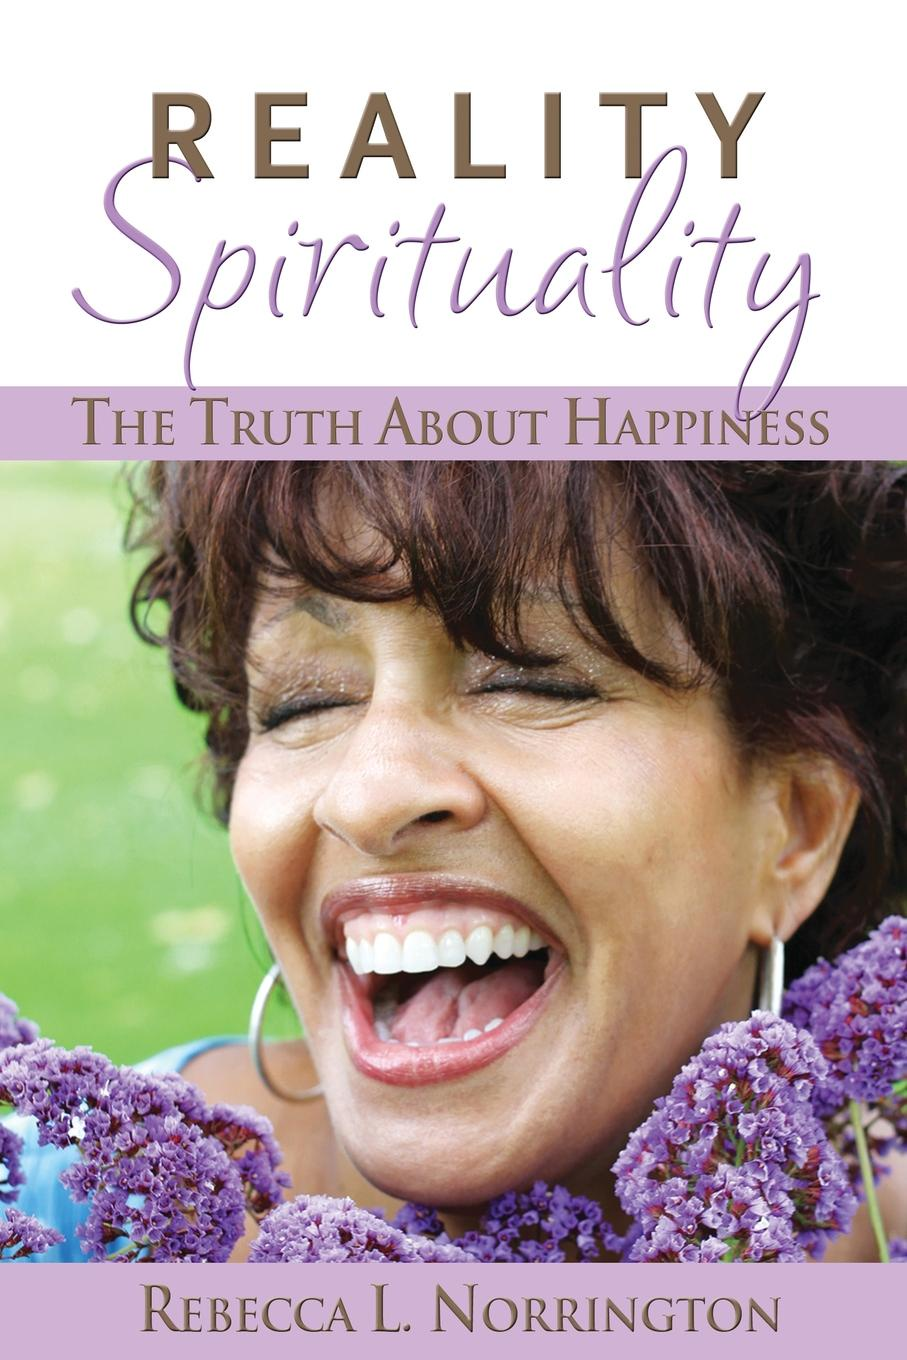 Rebecca L. Norrington Realityspirituality the Truth about Happiness Final mathew hartley one month to happiness